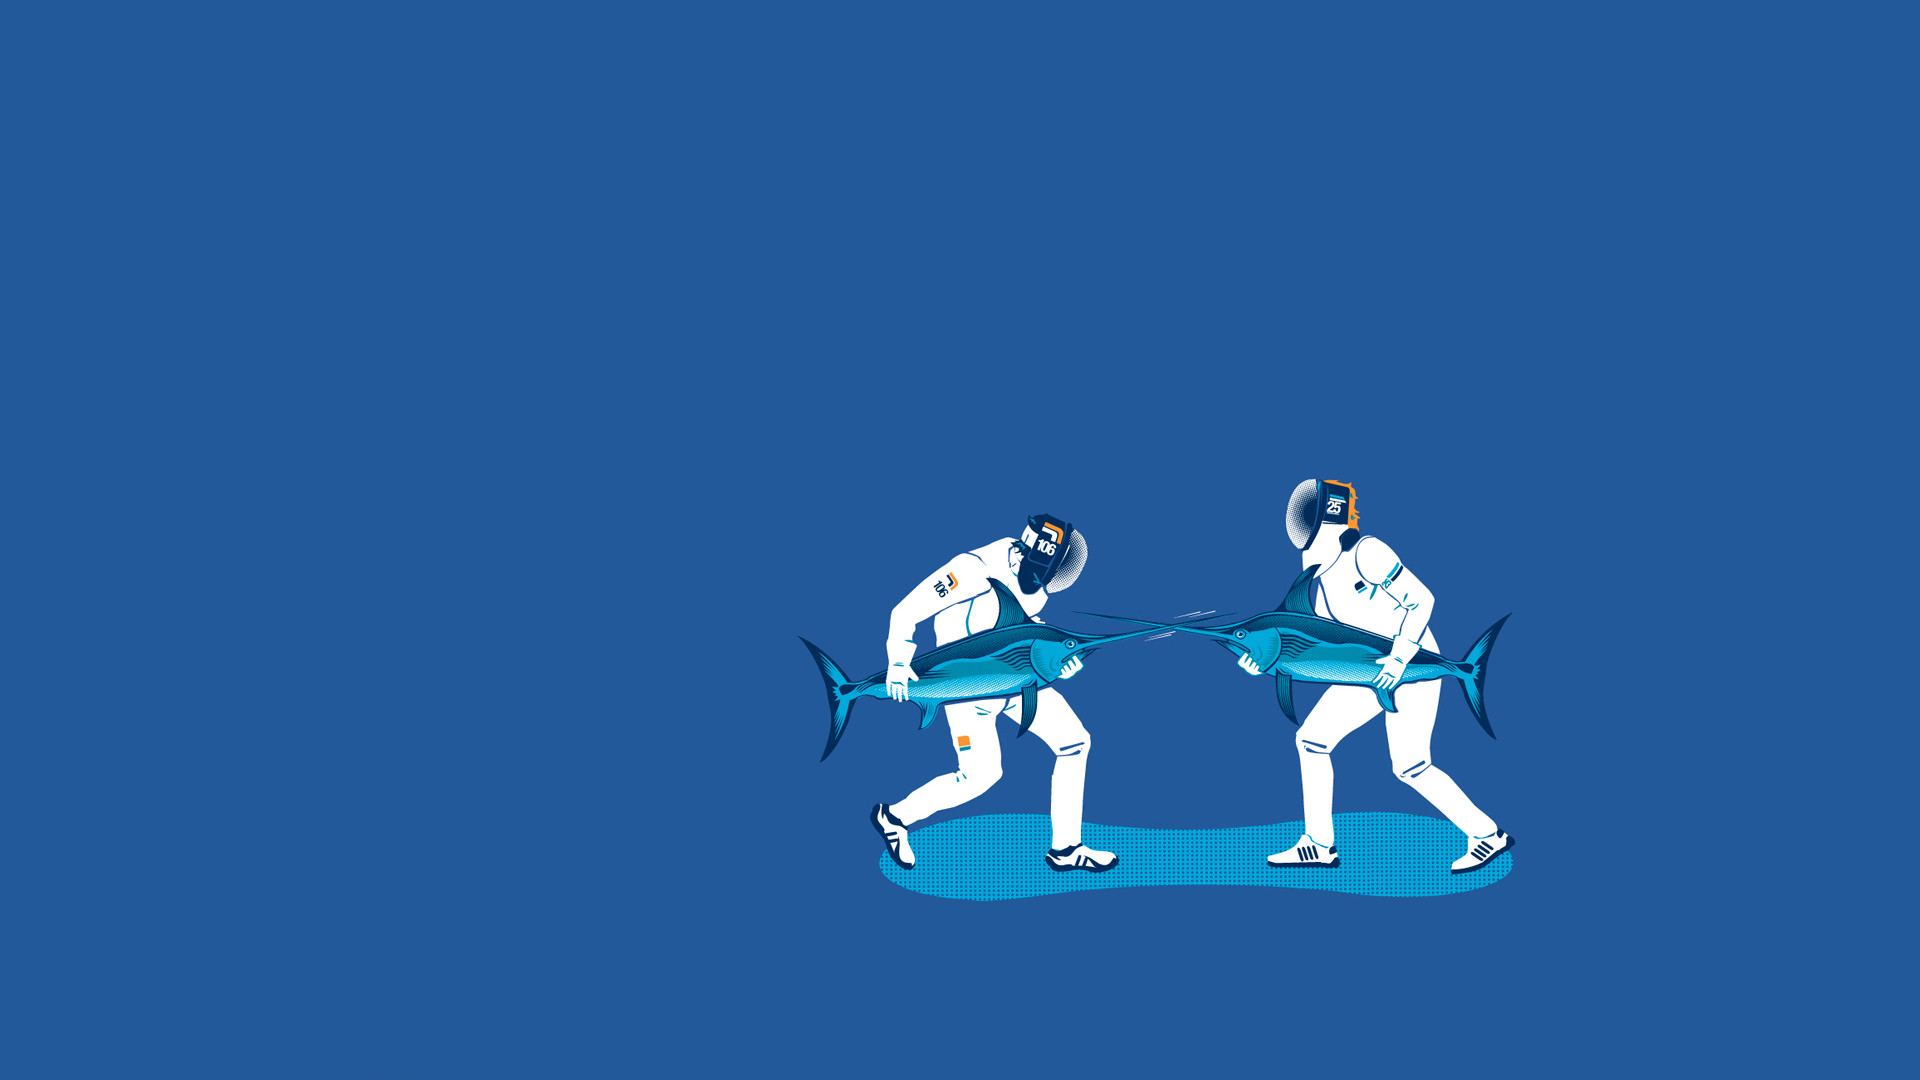 1920x1080 - Fencing Wallpapers 33